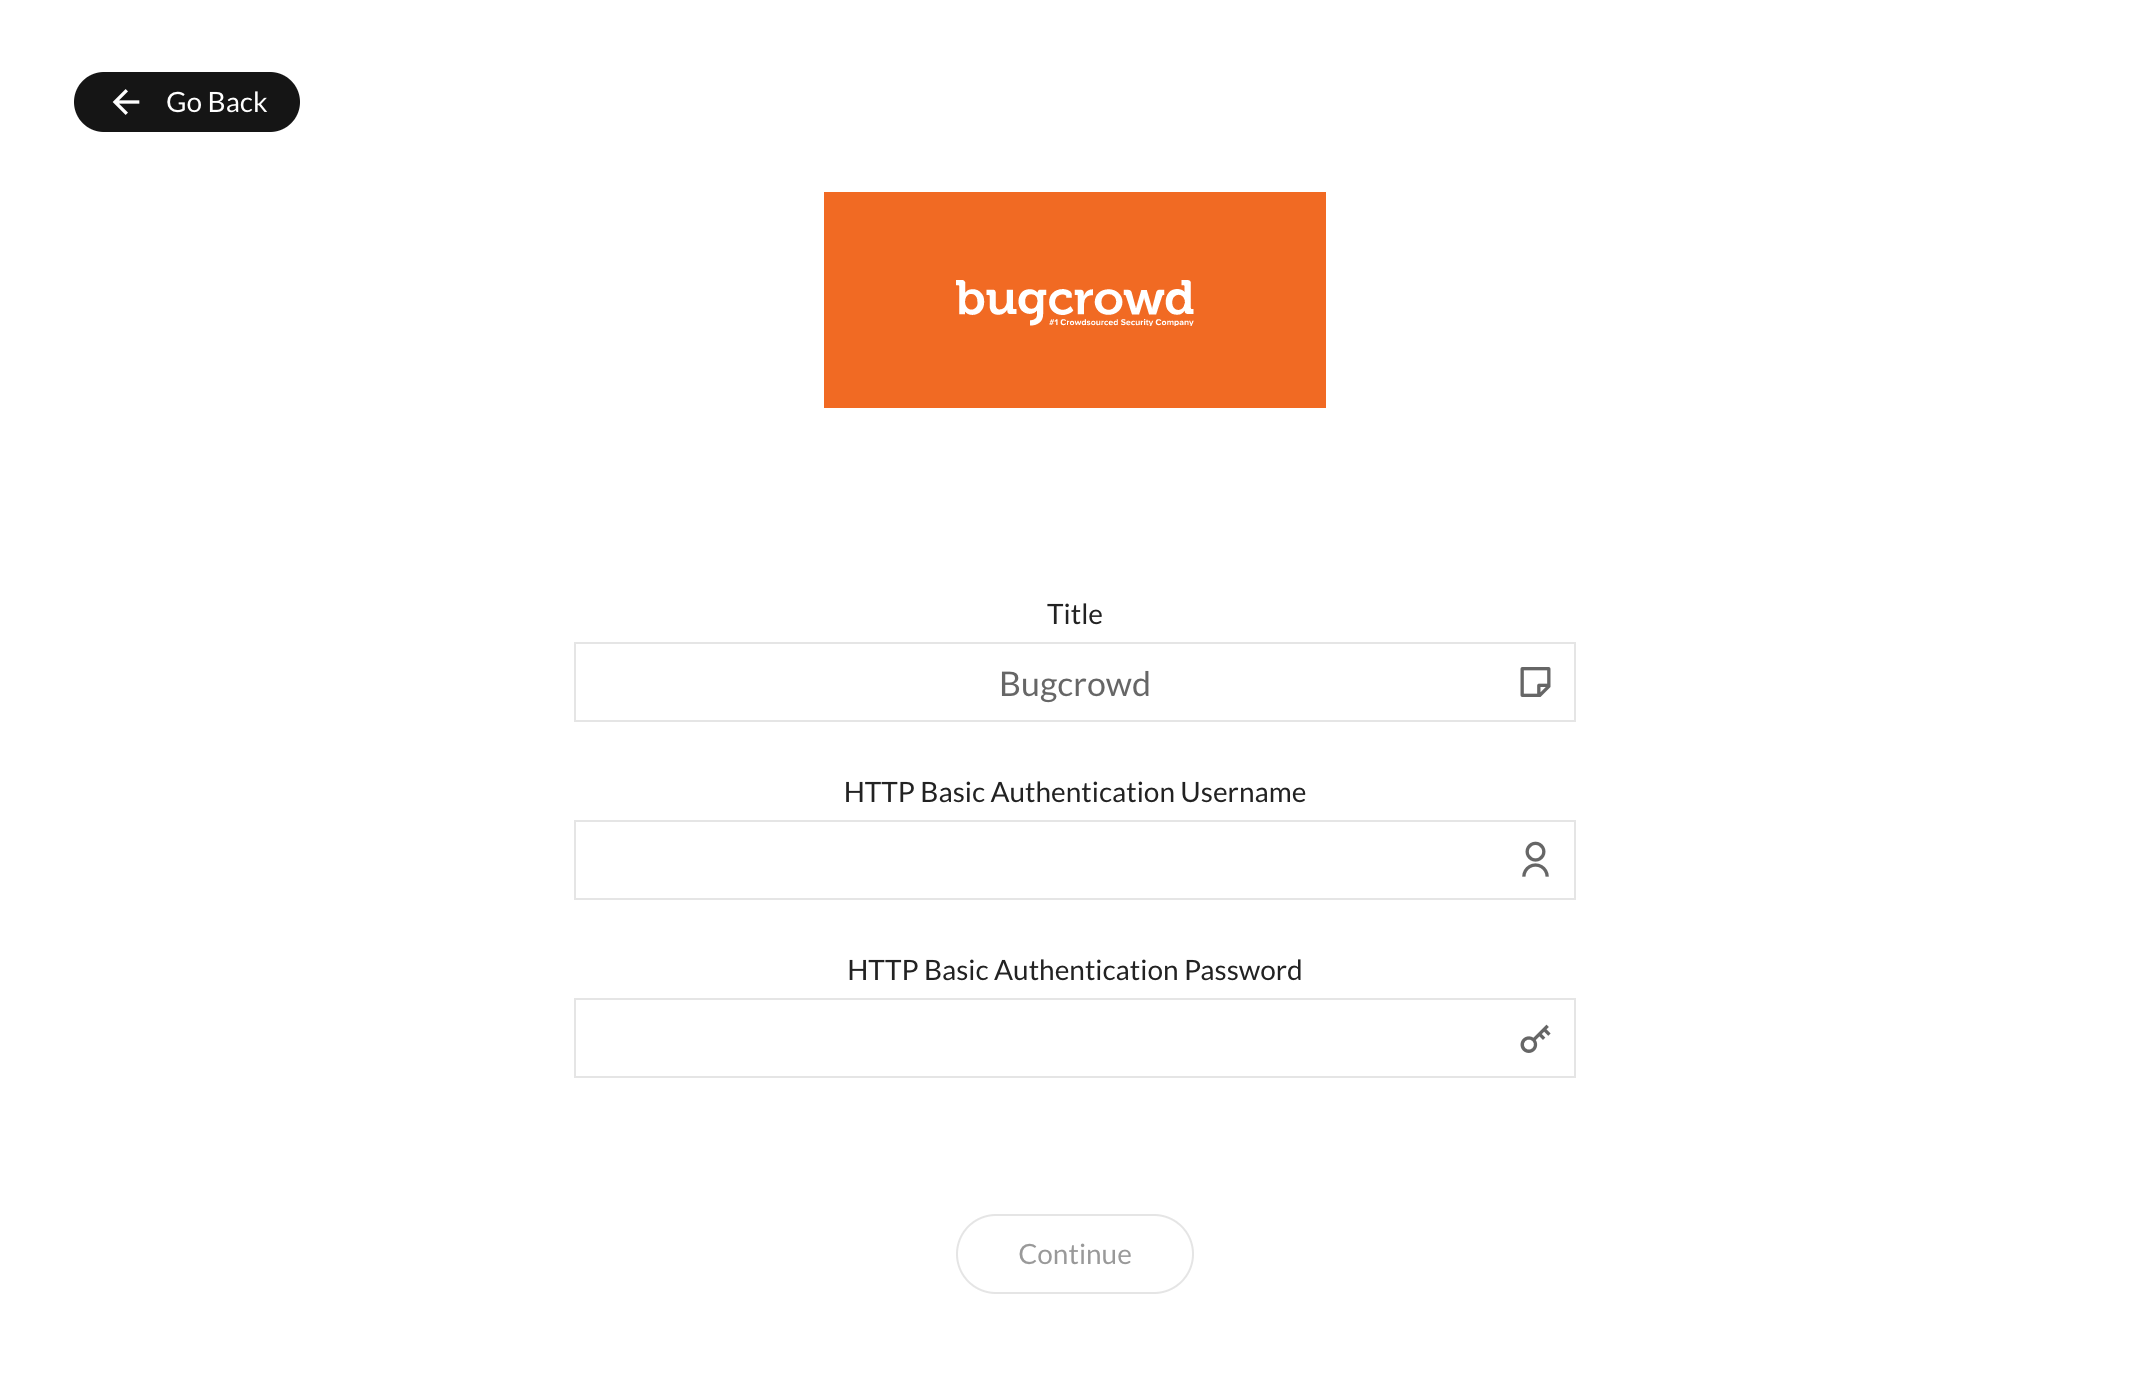 bugcrowd-authentication